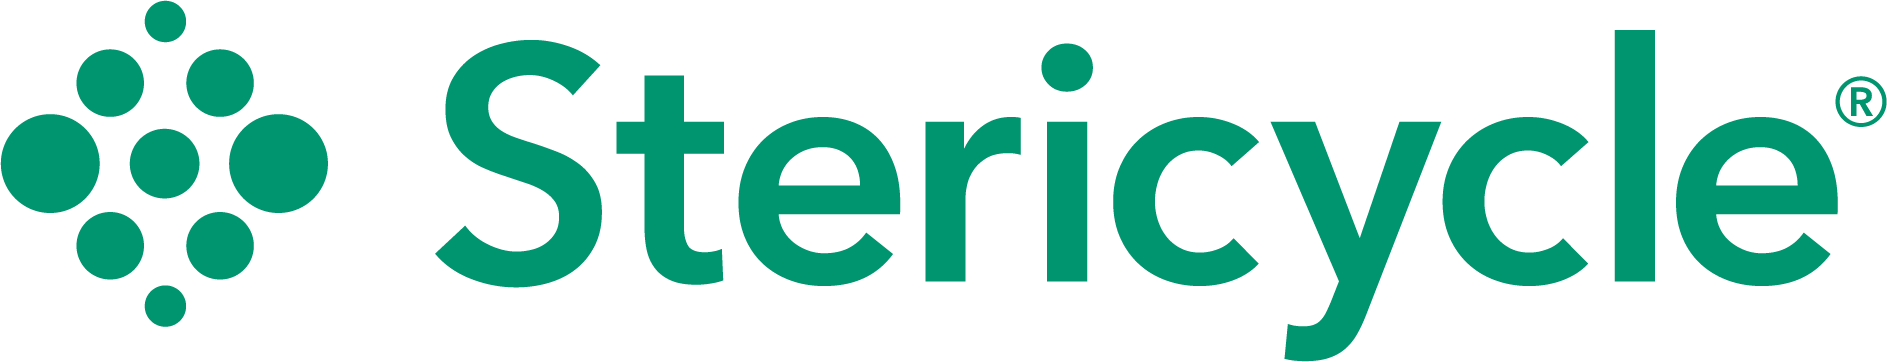 Stericycle Logo_2017_RGB.png